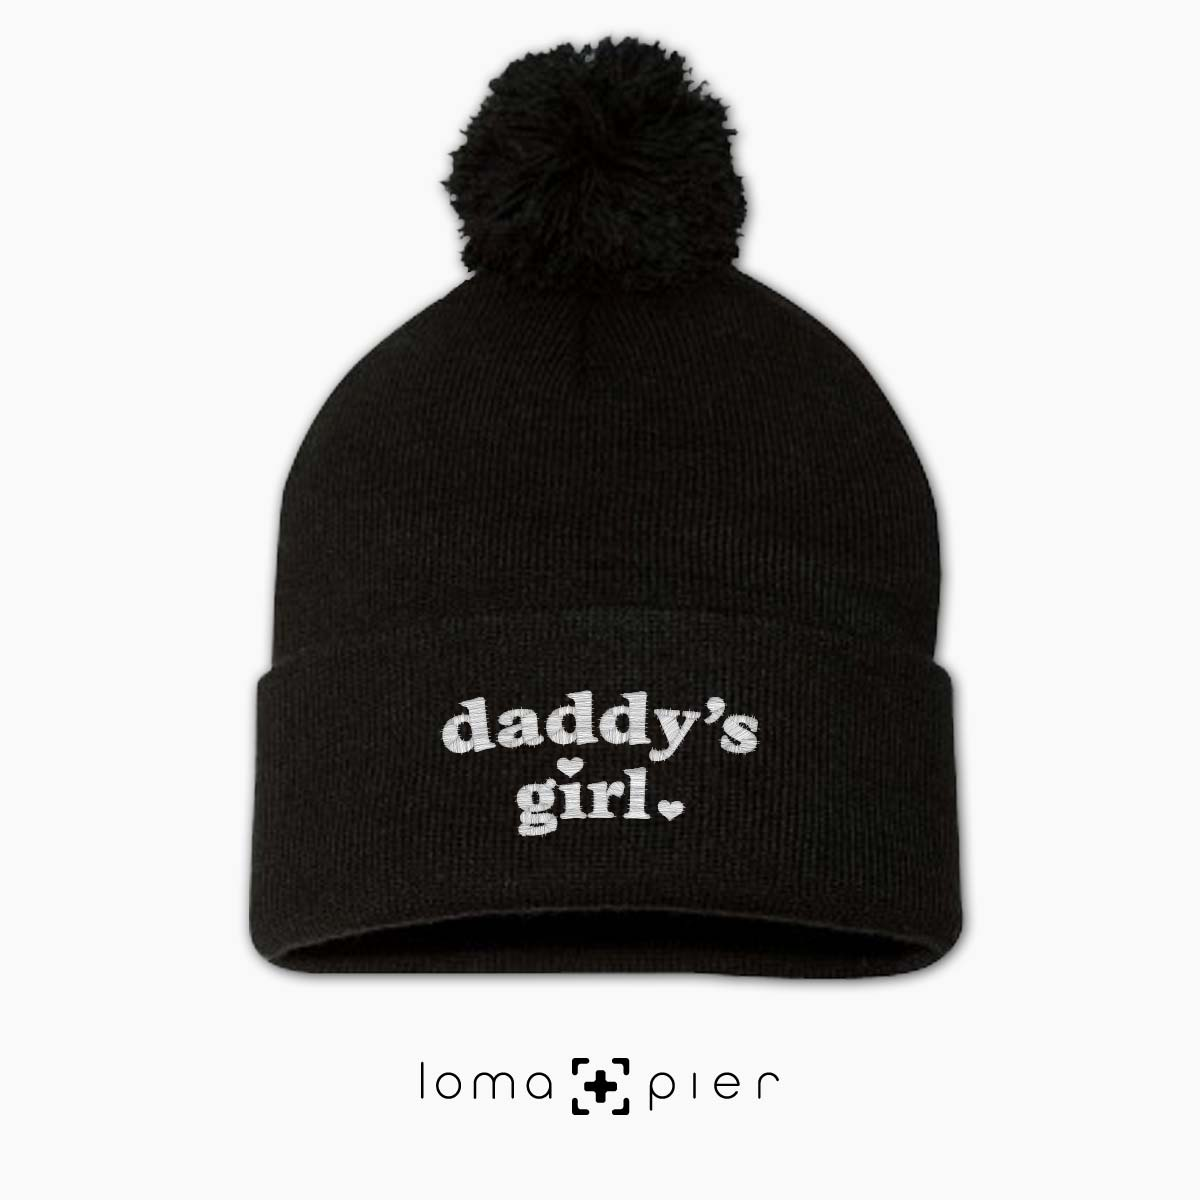 DADDY'S GIRL pom pom beanie cap by the loma+pier hat shop